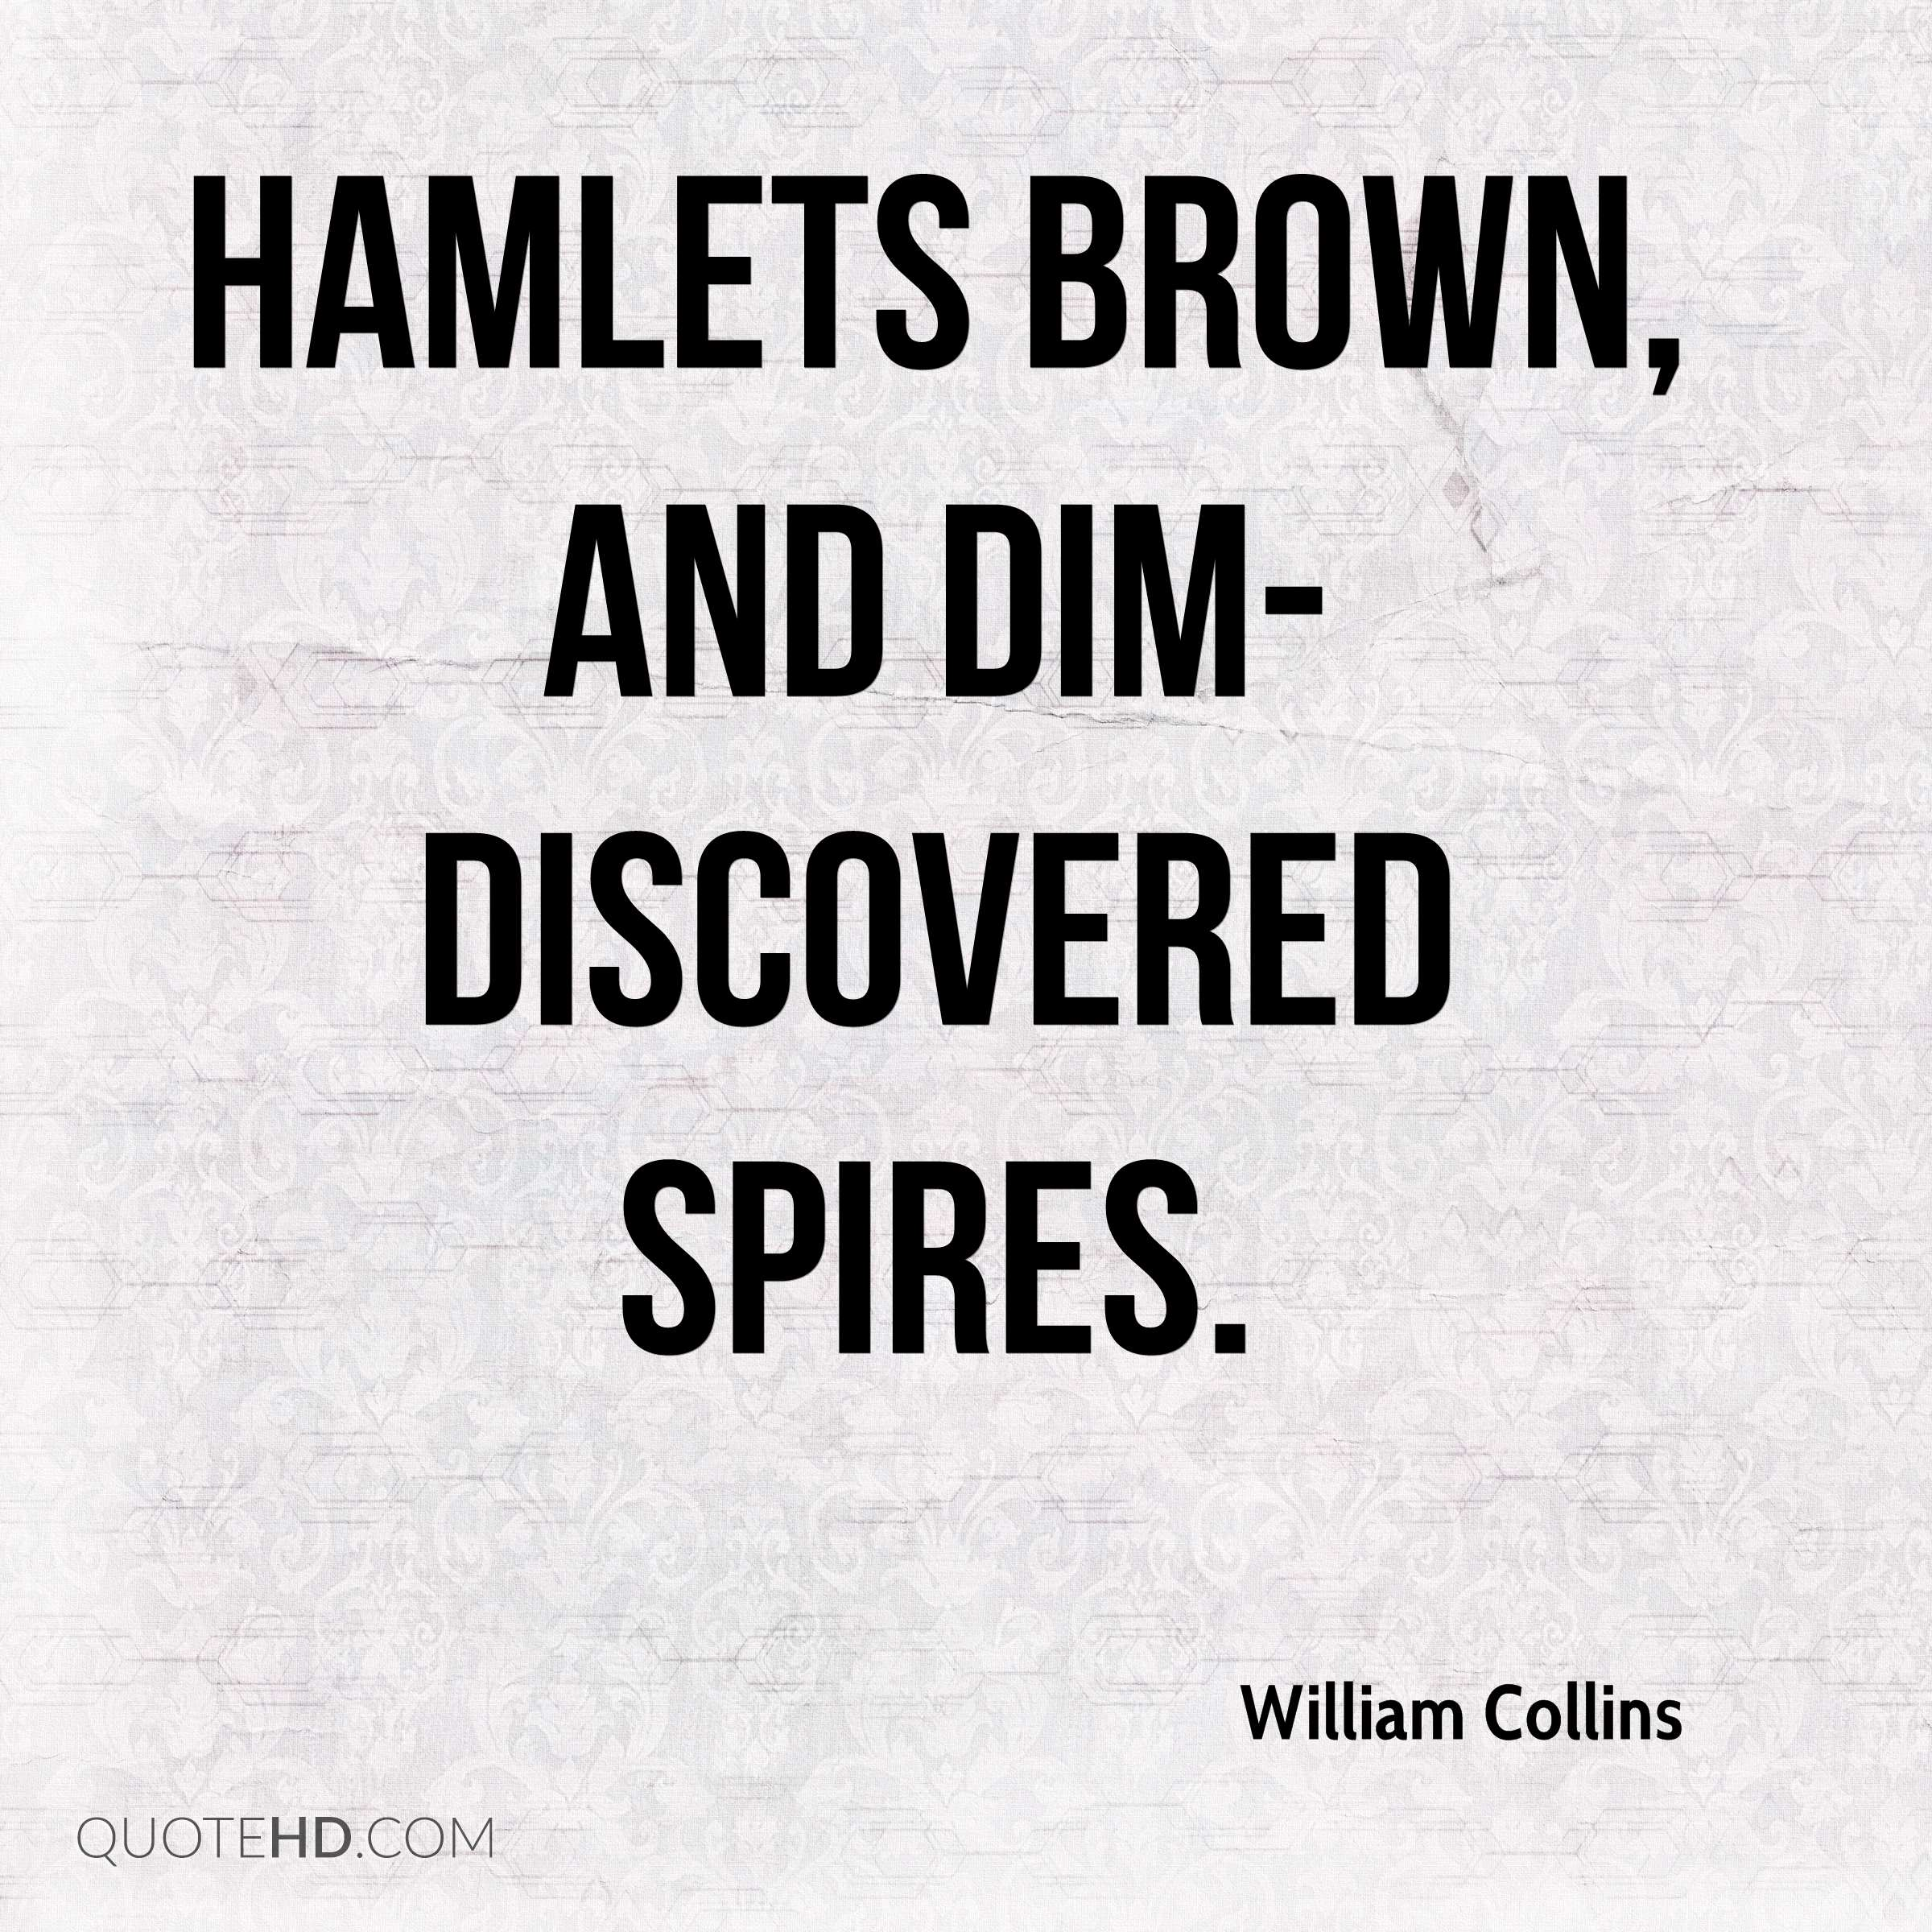 Hamlets brown, and dim-discovered spires.